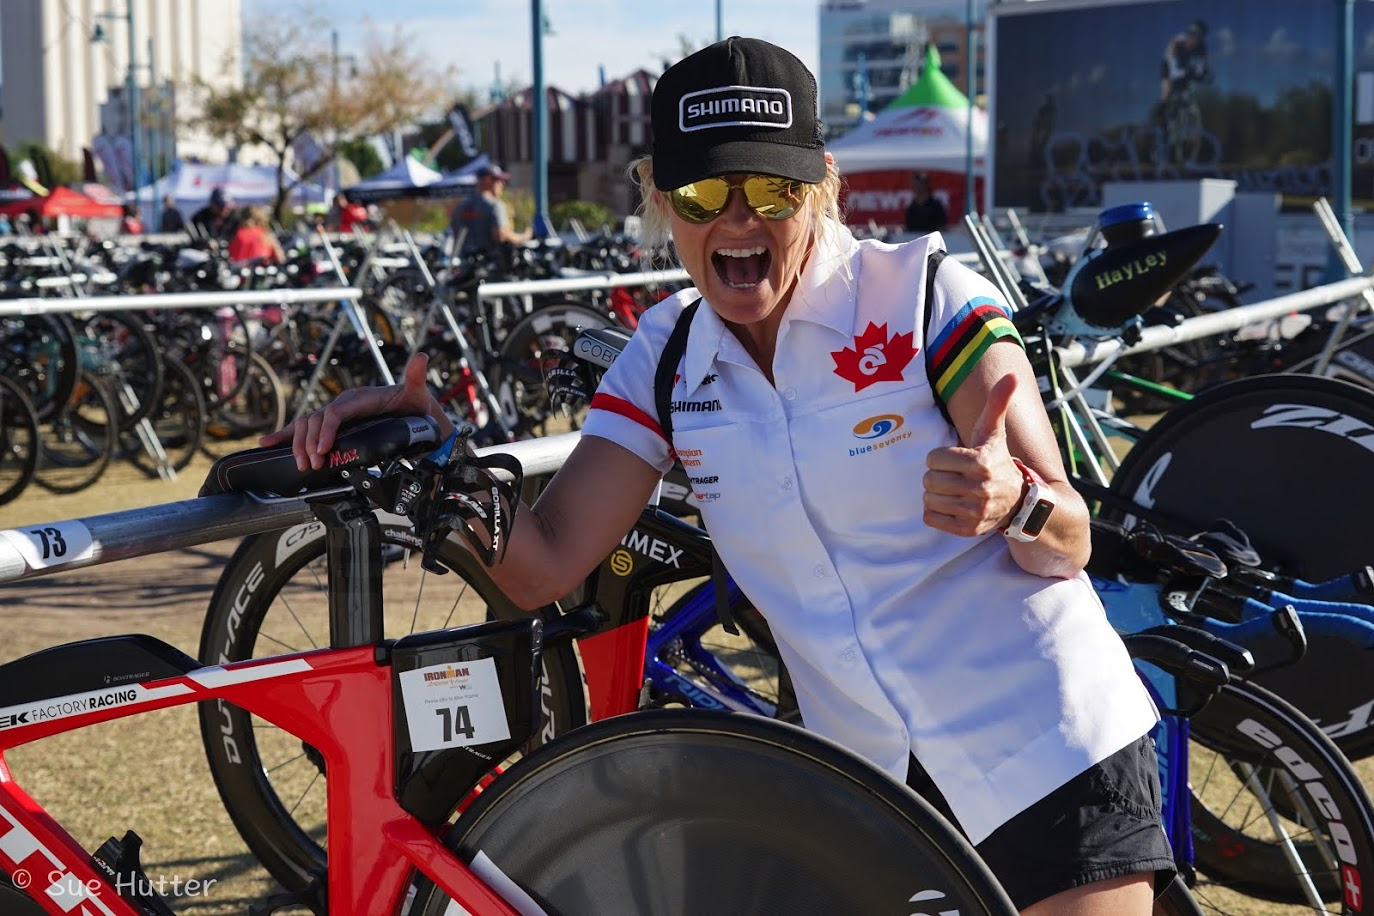 triathlete melanie mcquaid excited pre race Ironman Arizona with her Trek bike and Rudy Project glasses in transition